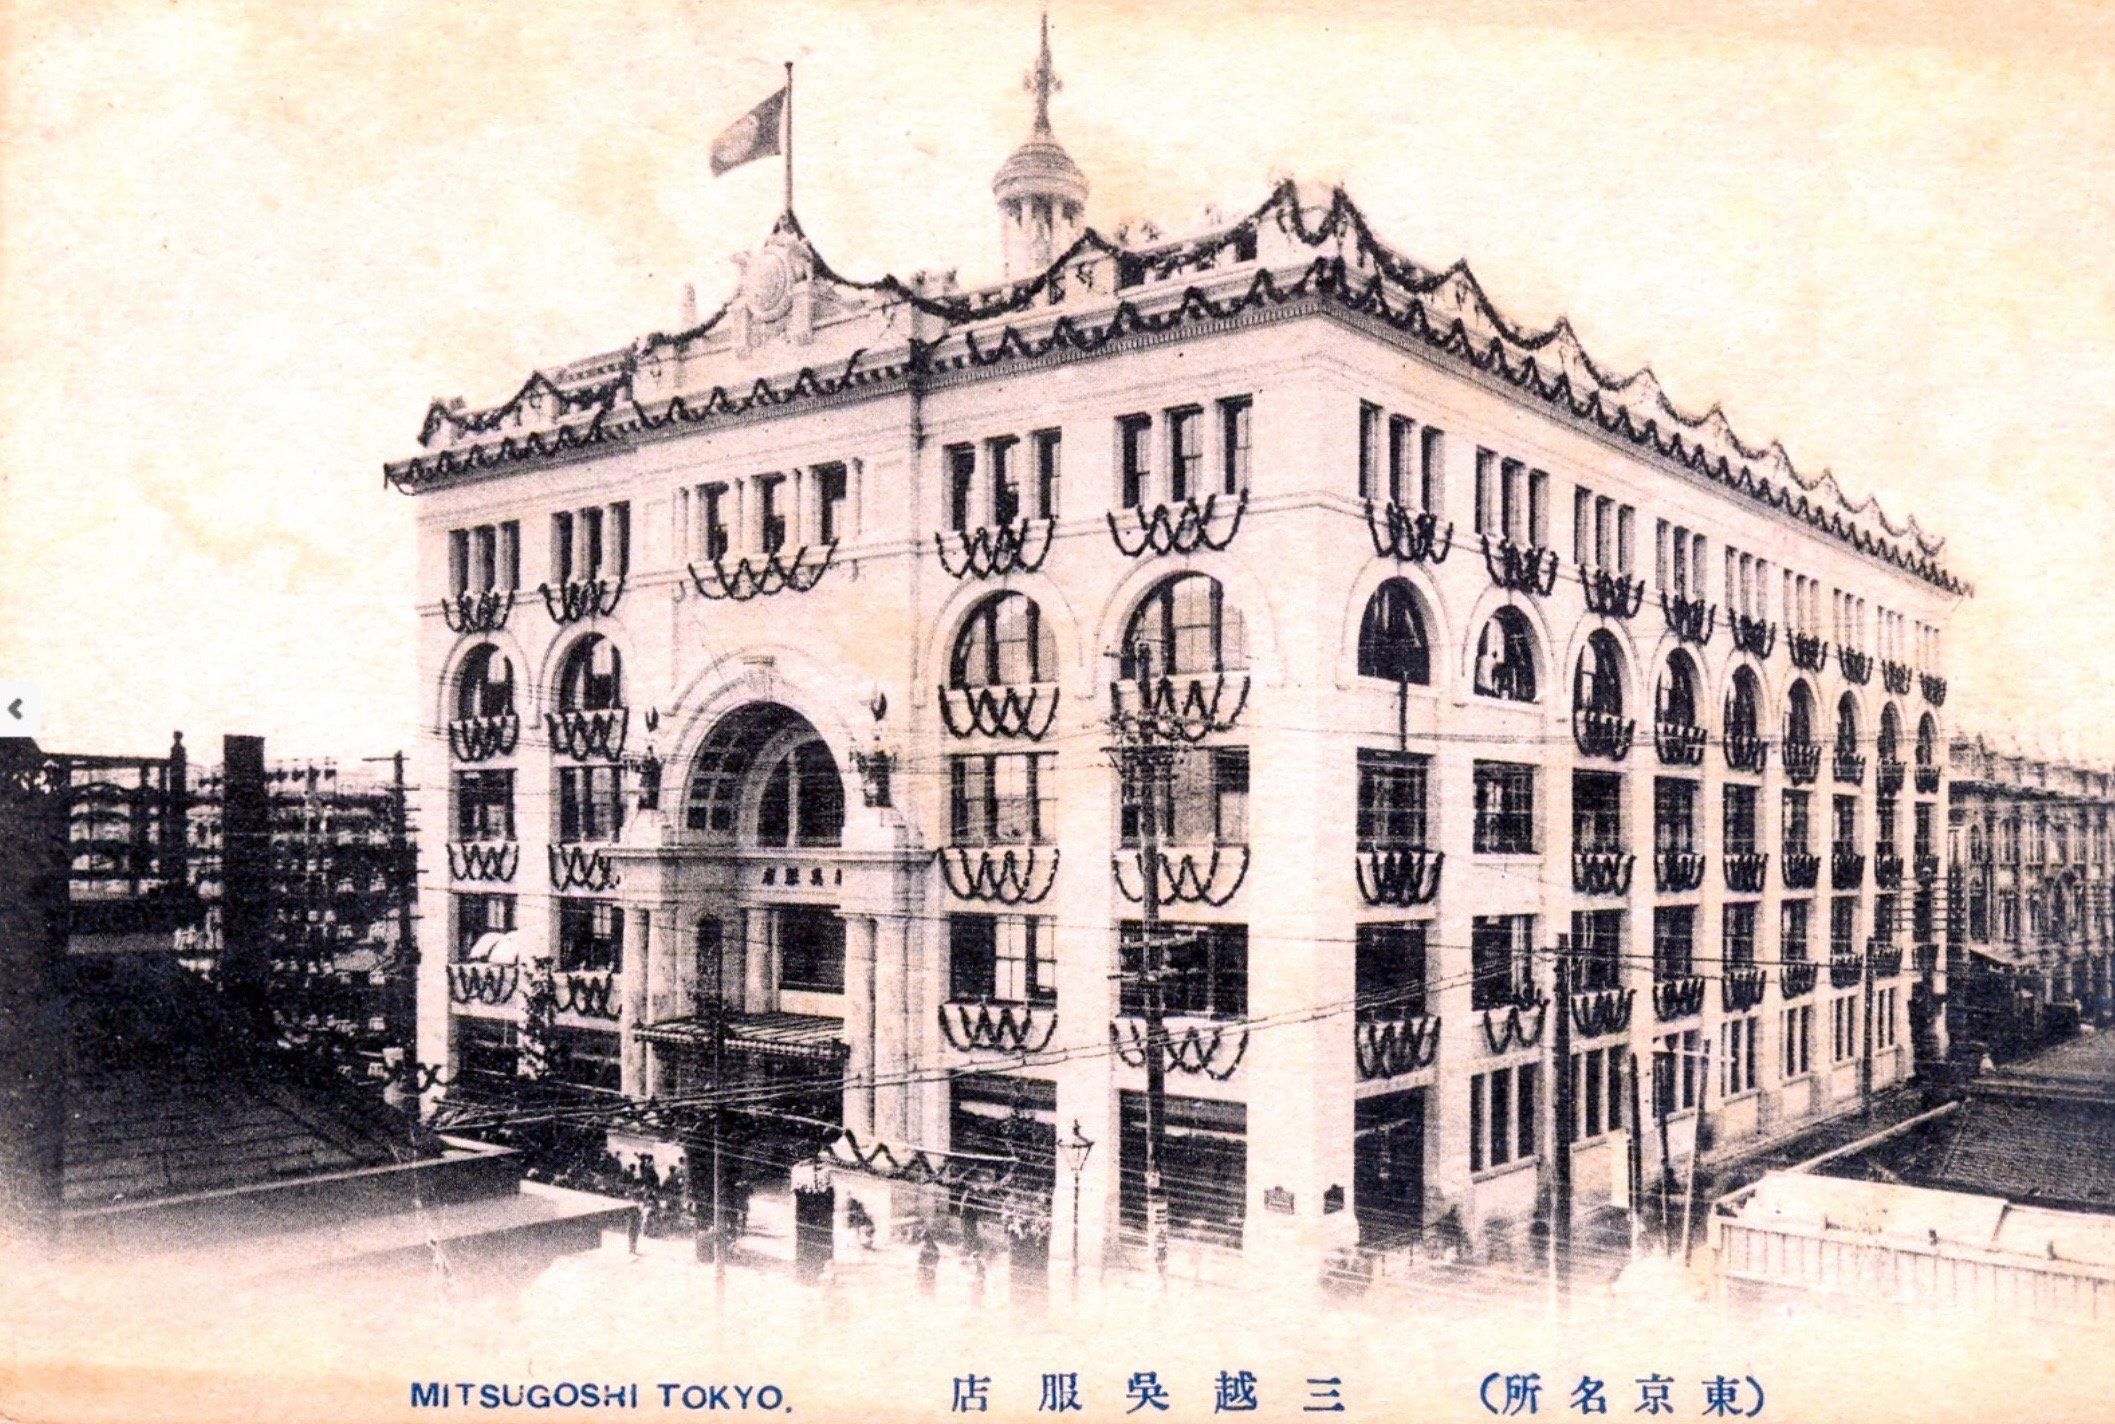 photograph of the Mitsukoshi department store in Tokyo Japan